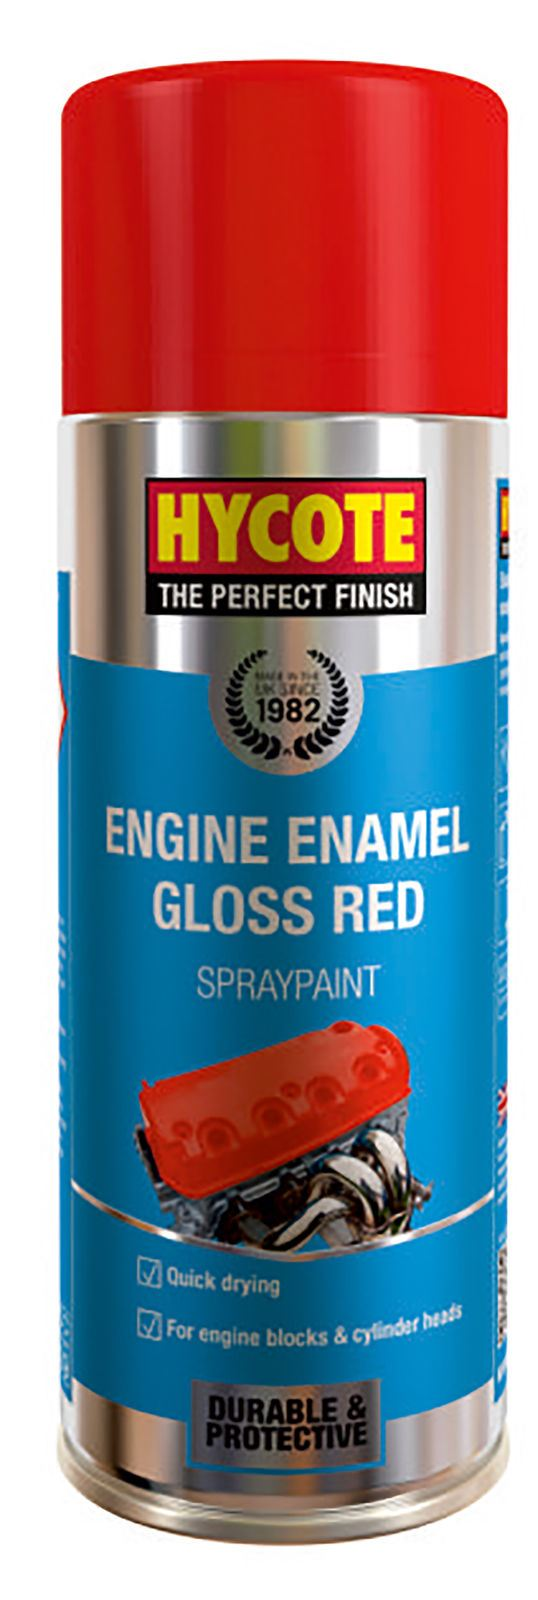 Hycote Engine Enamel Gloss Red Paint - 400ml